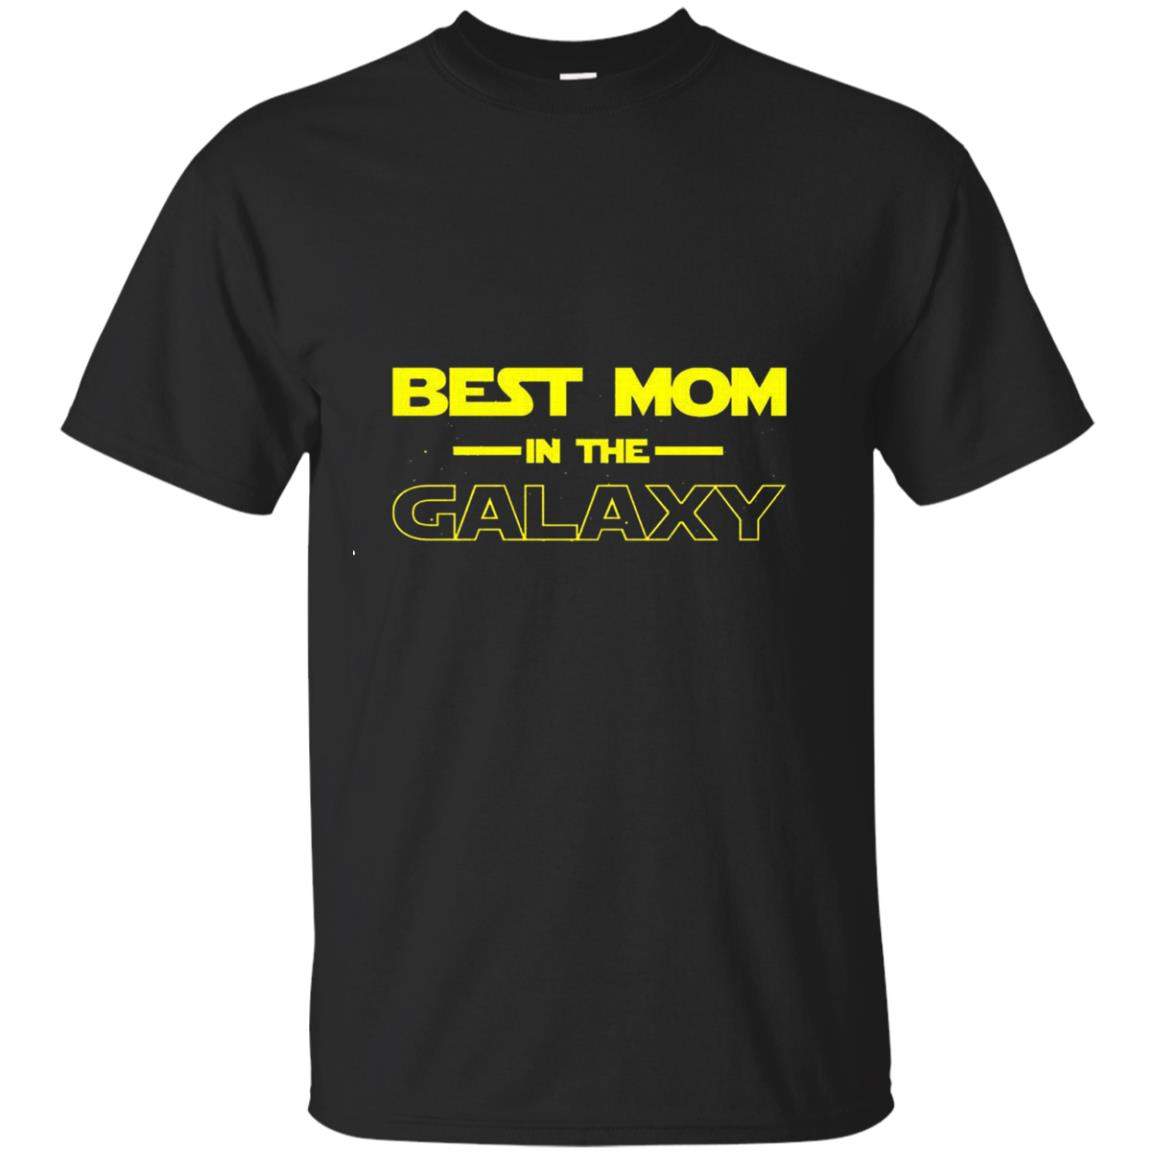 Best Mom In The Galaxy Shirts  Mom T Shirt  Mother Gift  Mom Shirt  Funny Mom Shirt  Mom Gift Shirt  Gift For Mom